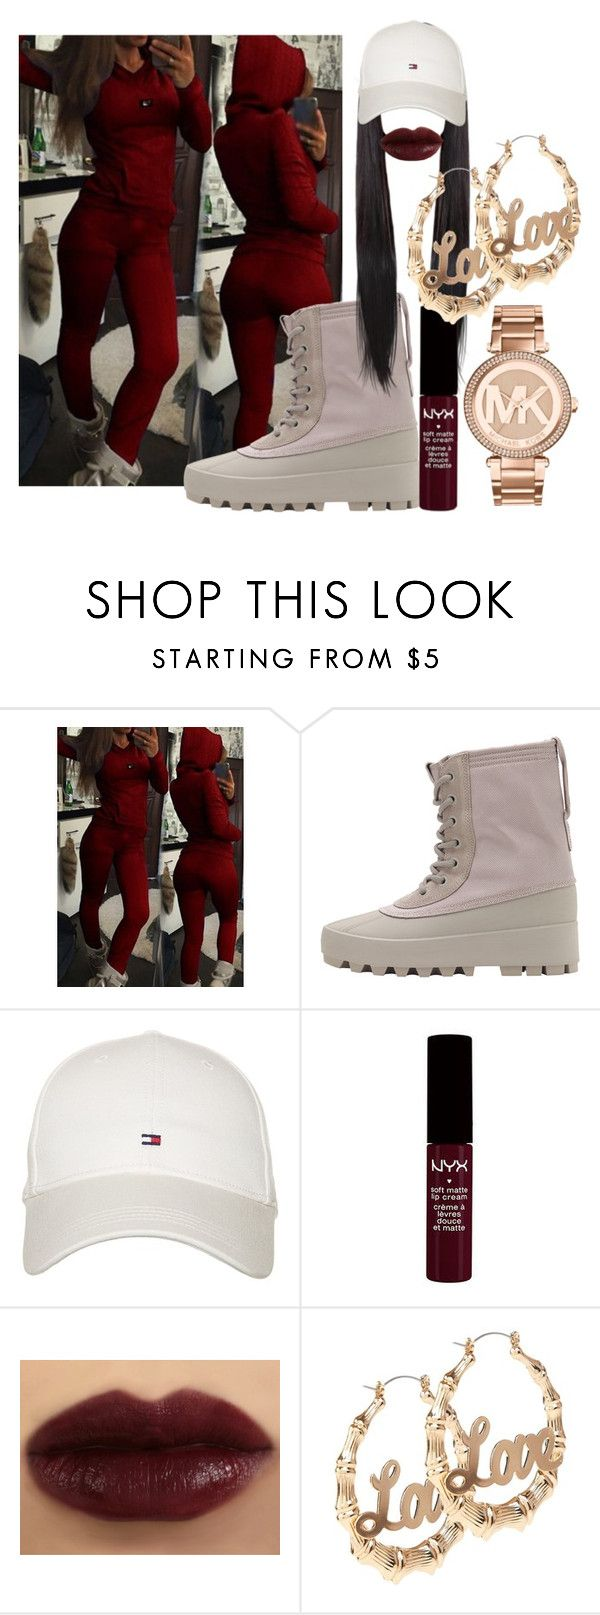 """Hip Hop Honors 2016😍♥"" by beautyqueen-927 ❤ liked on Polyvore featuring adidas Originals, Tommy Hilfiger and Michael Kors"